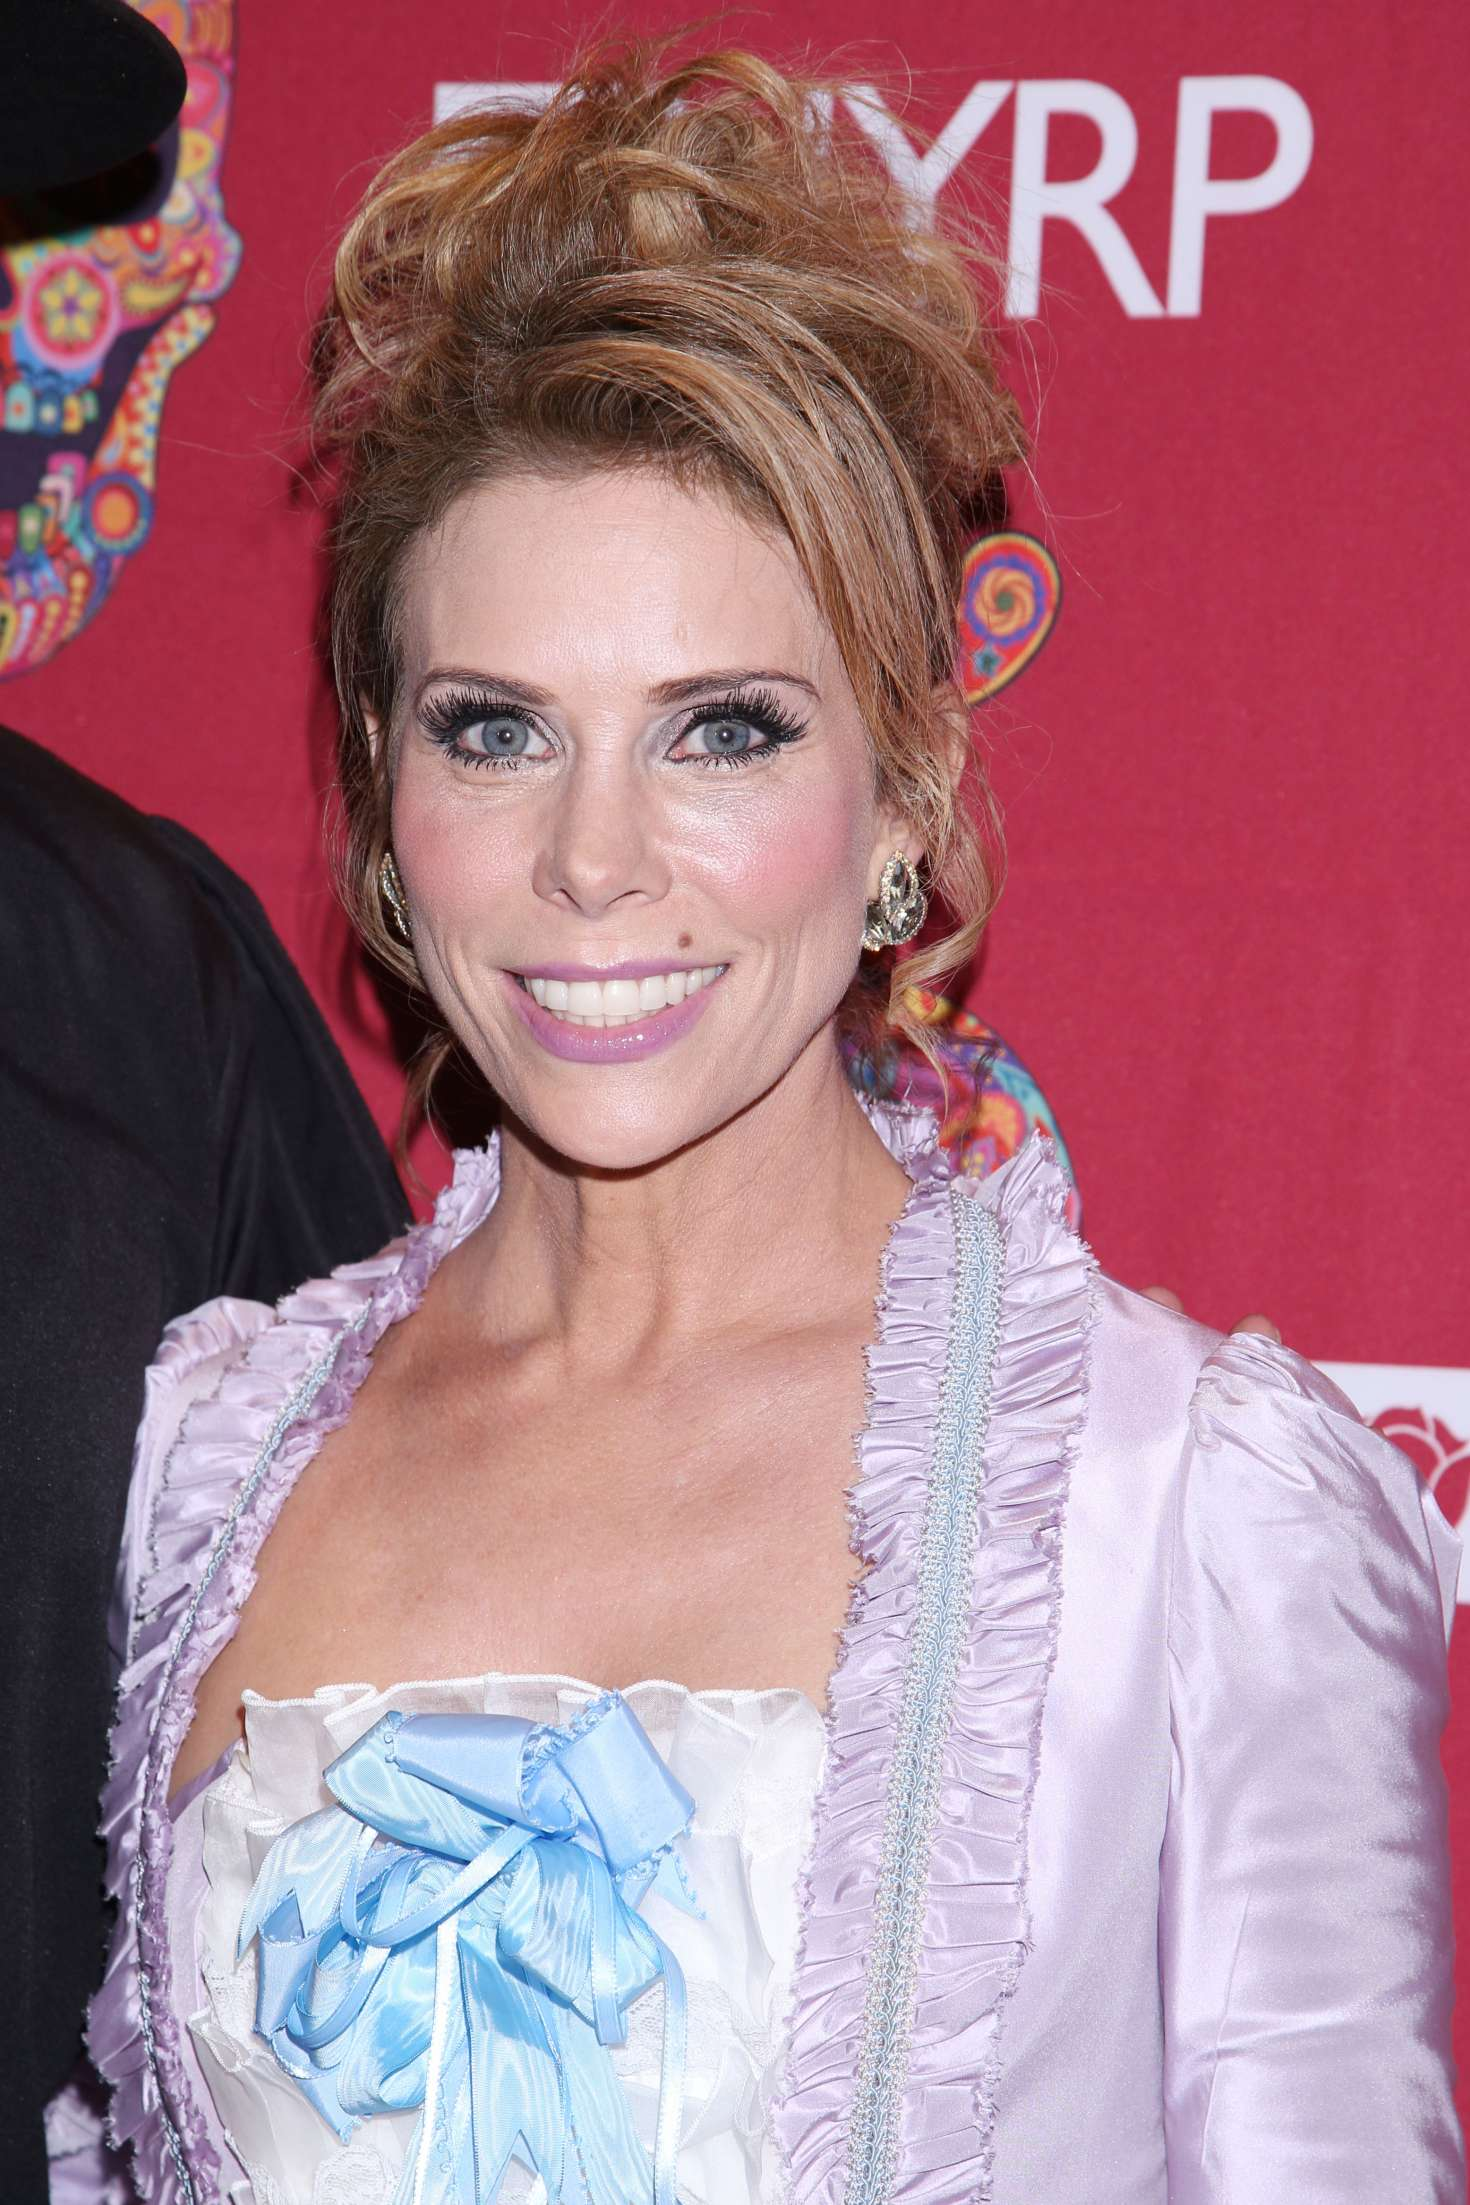 Cheryl Hines - 2016 Halloween Bash to benefit the NYRP in NYC Cheryl Hines